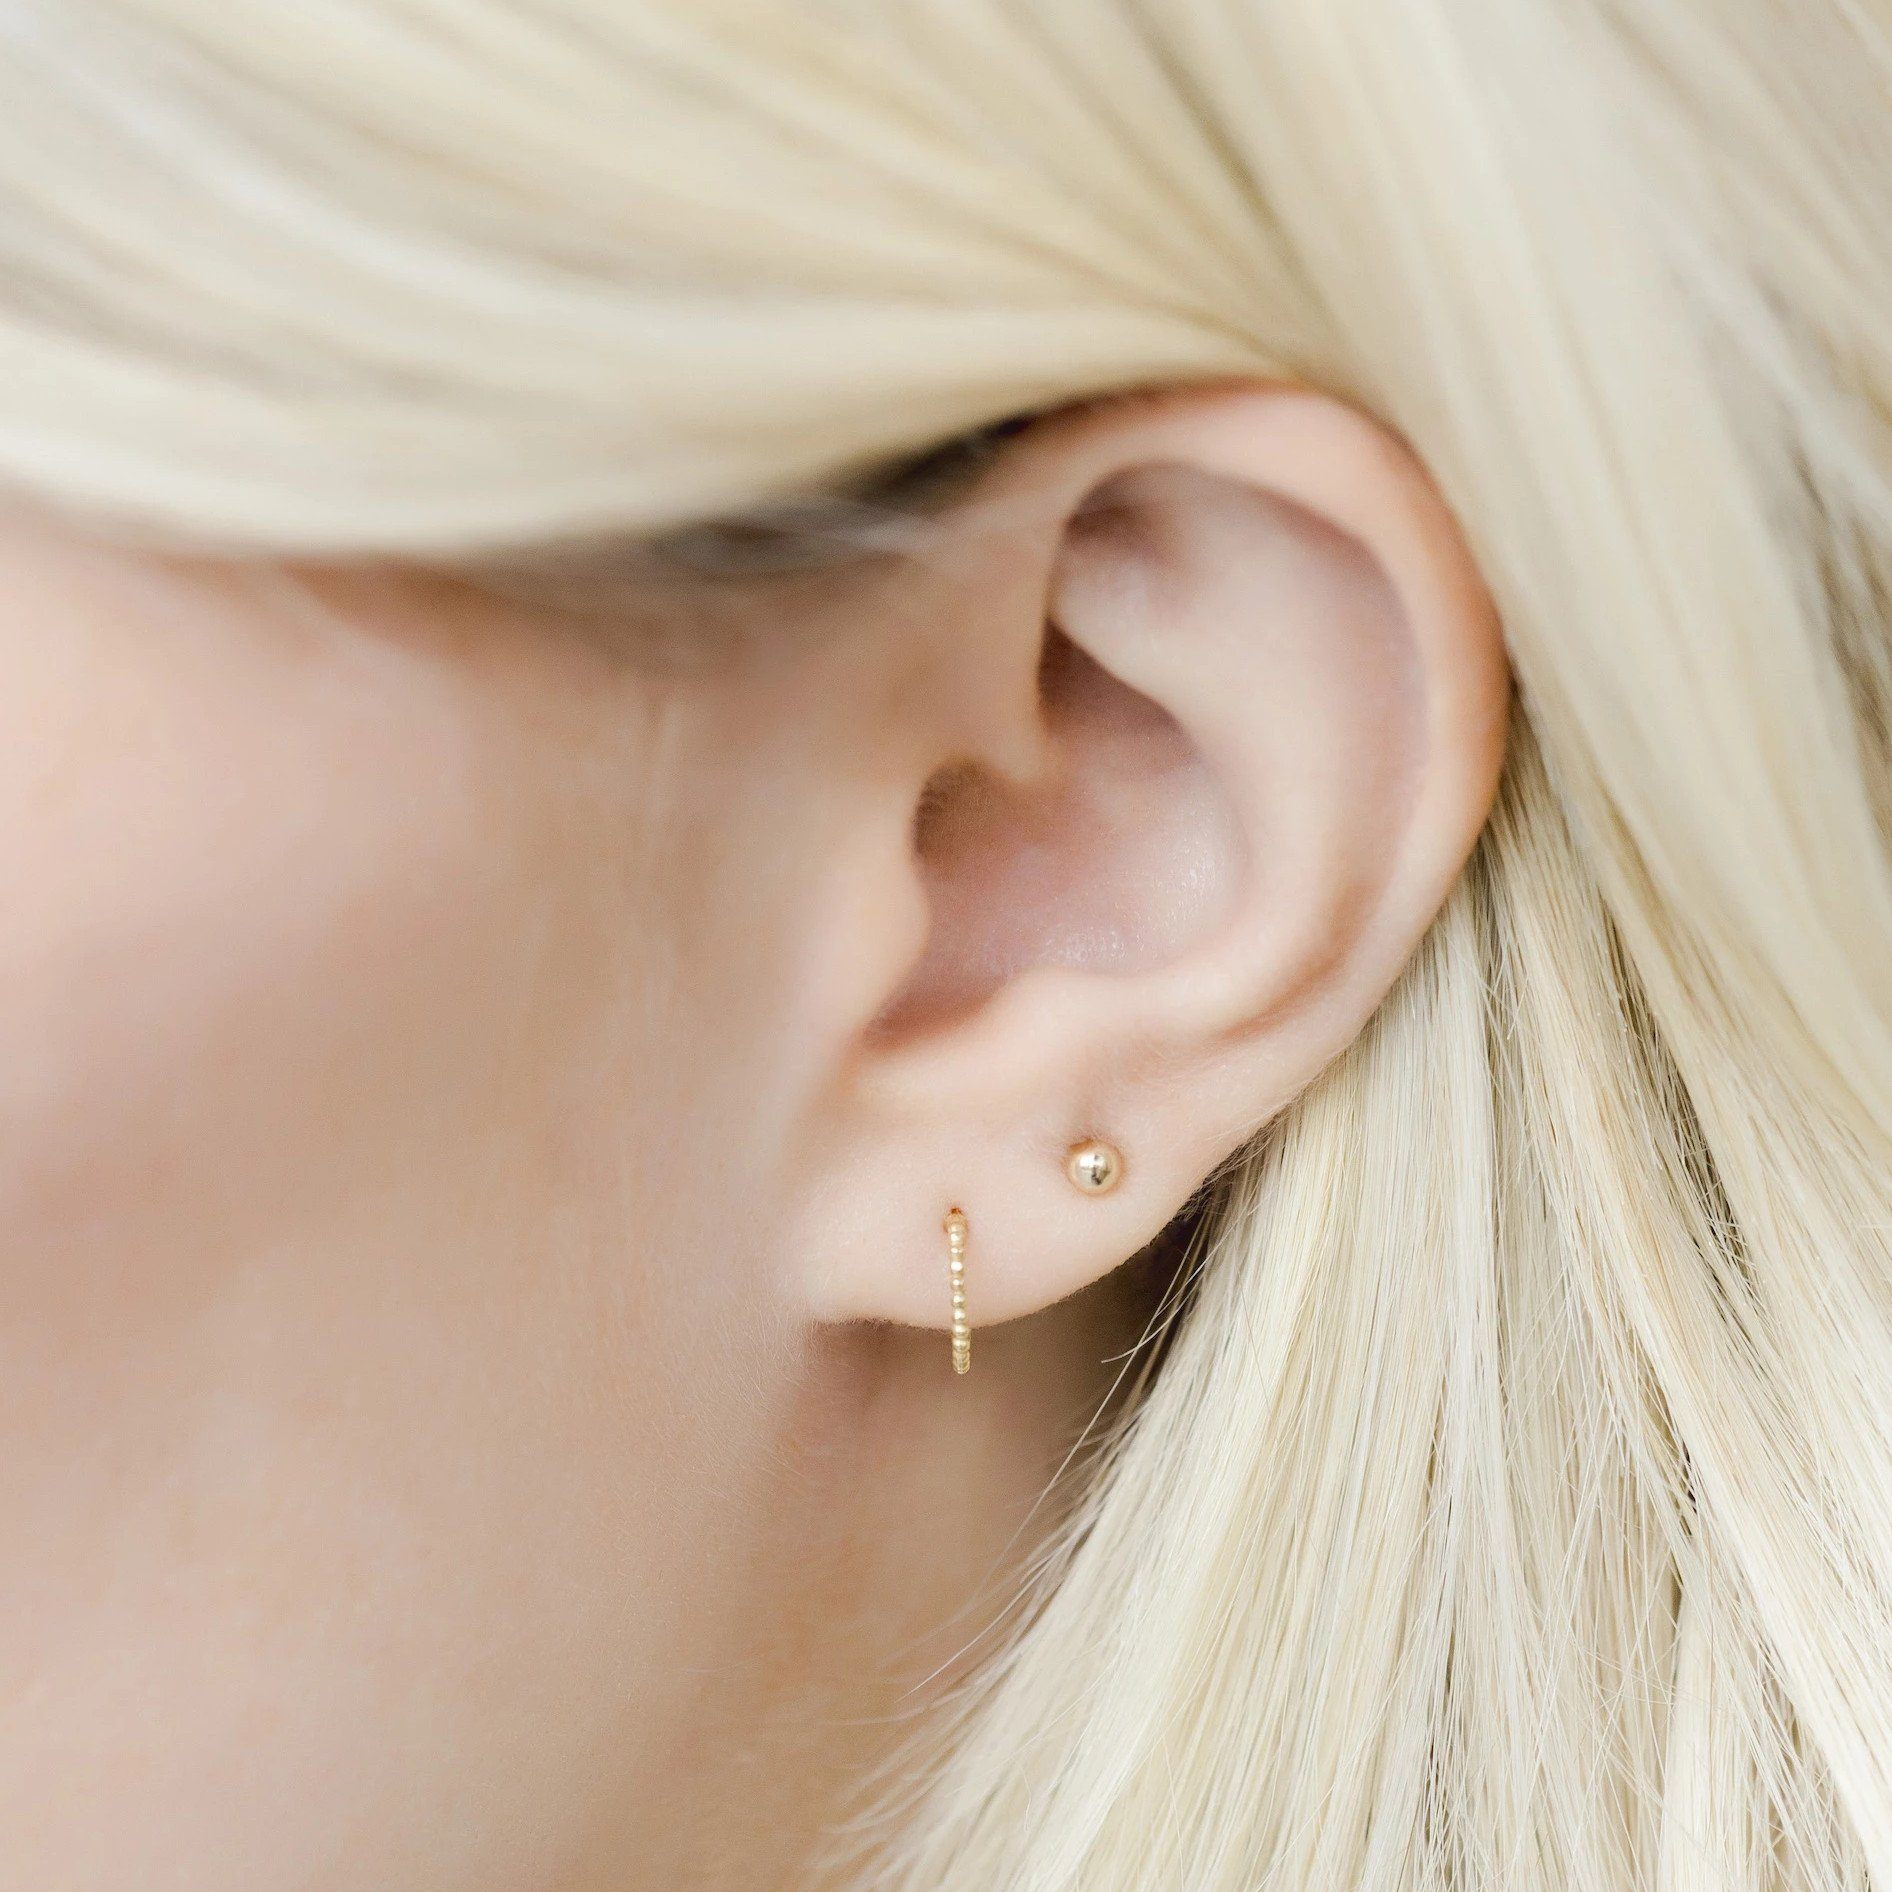 Up close image of models ear wearing the gold Beaded Hoop Studs.